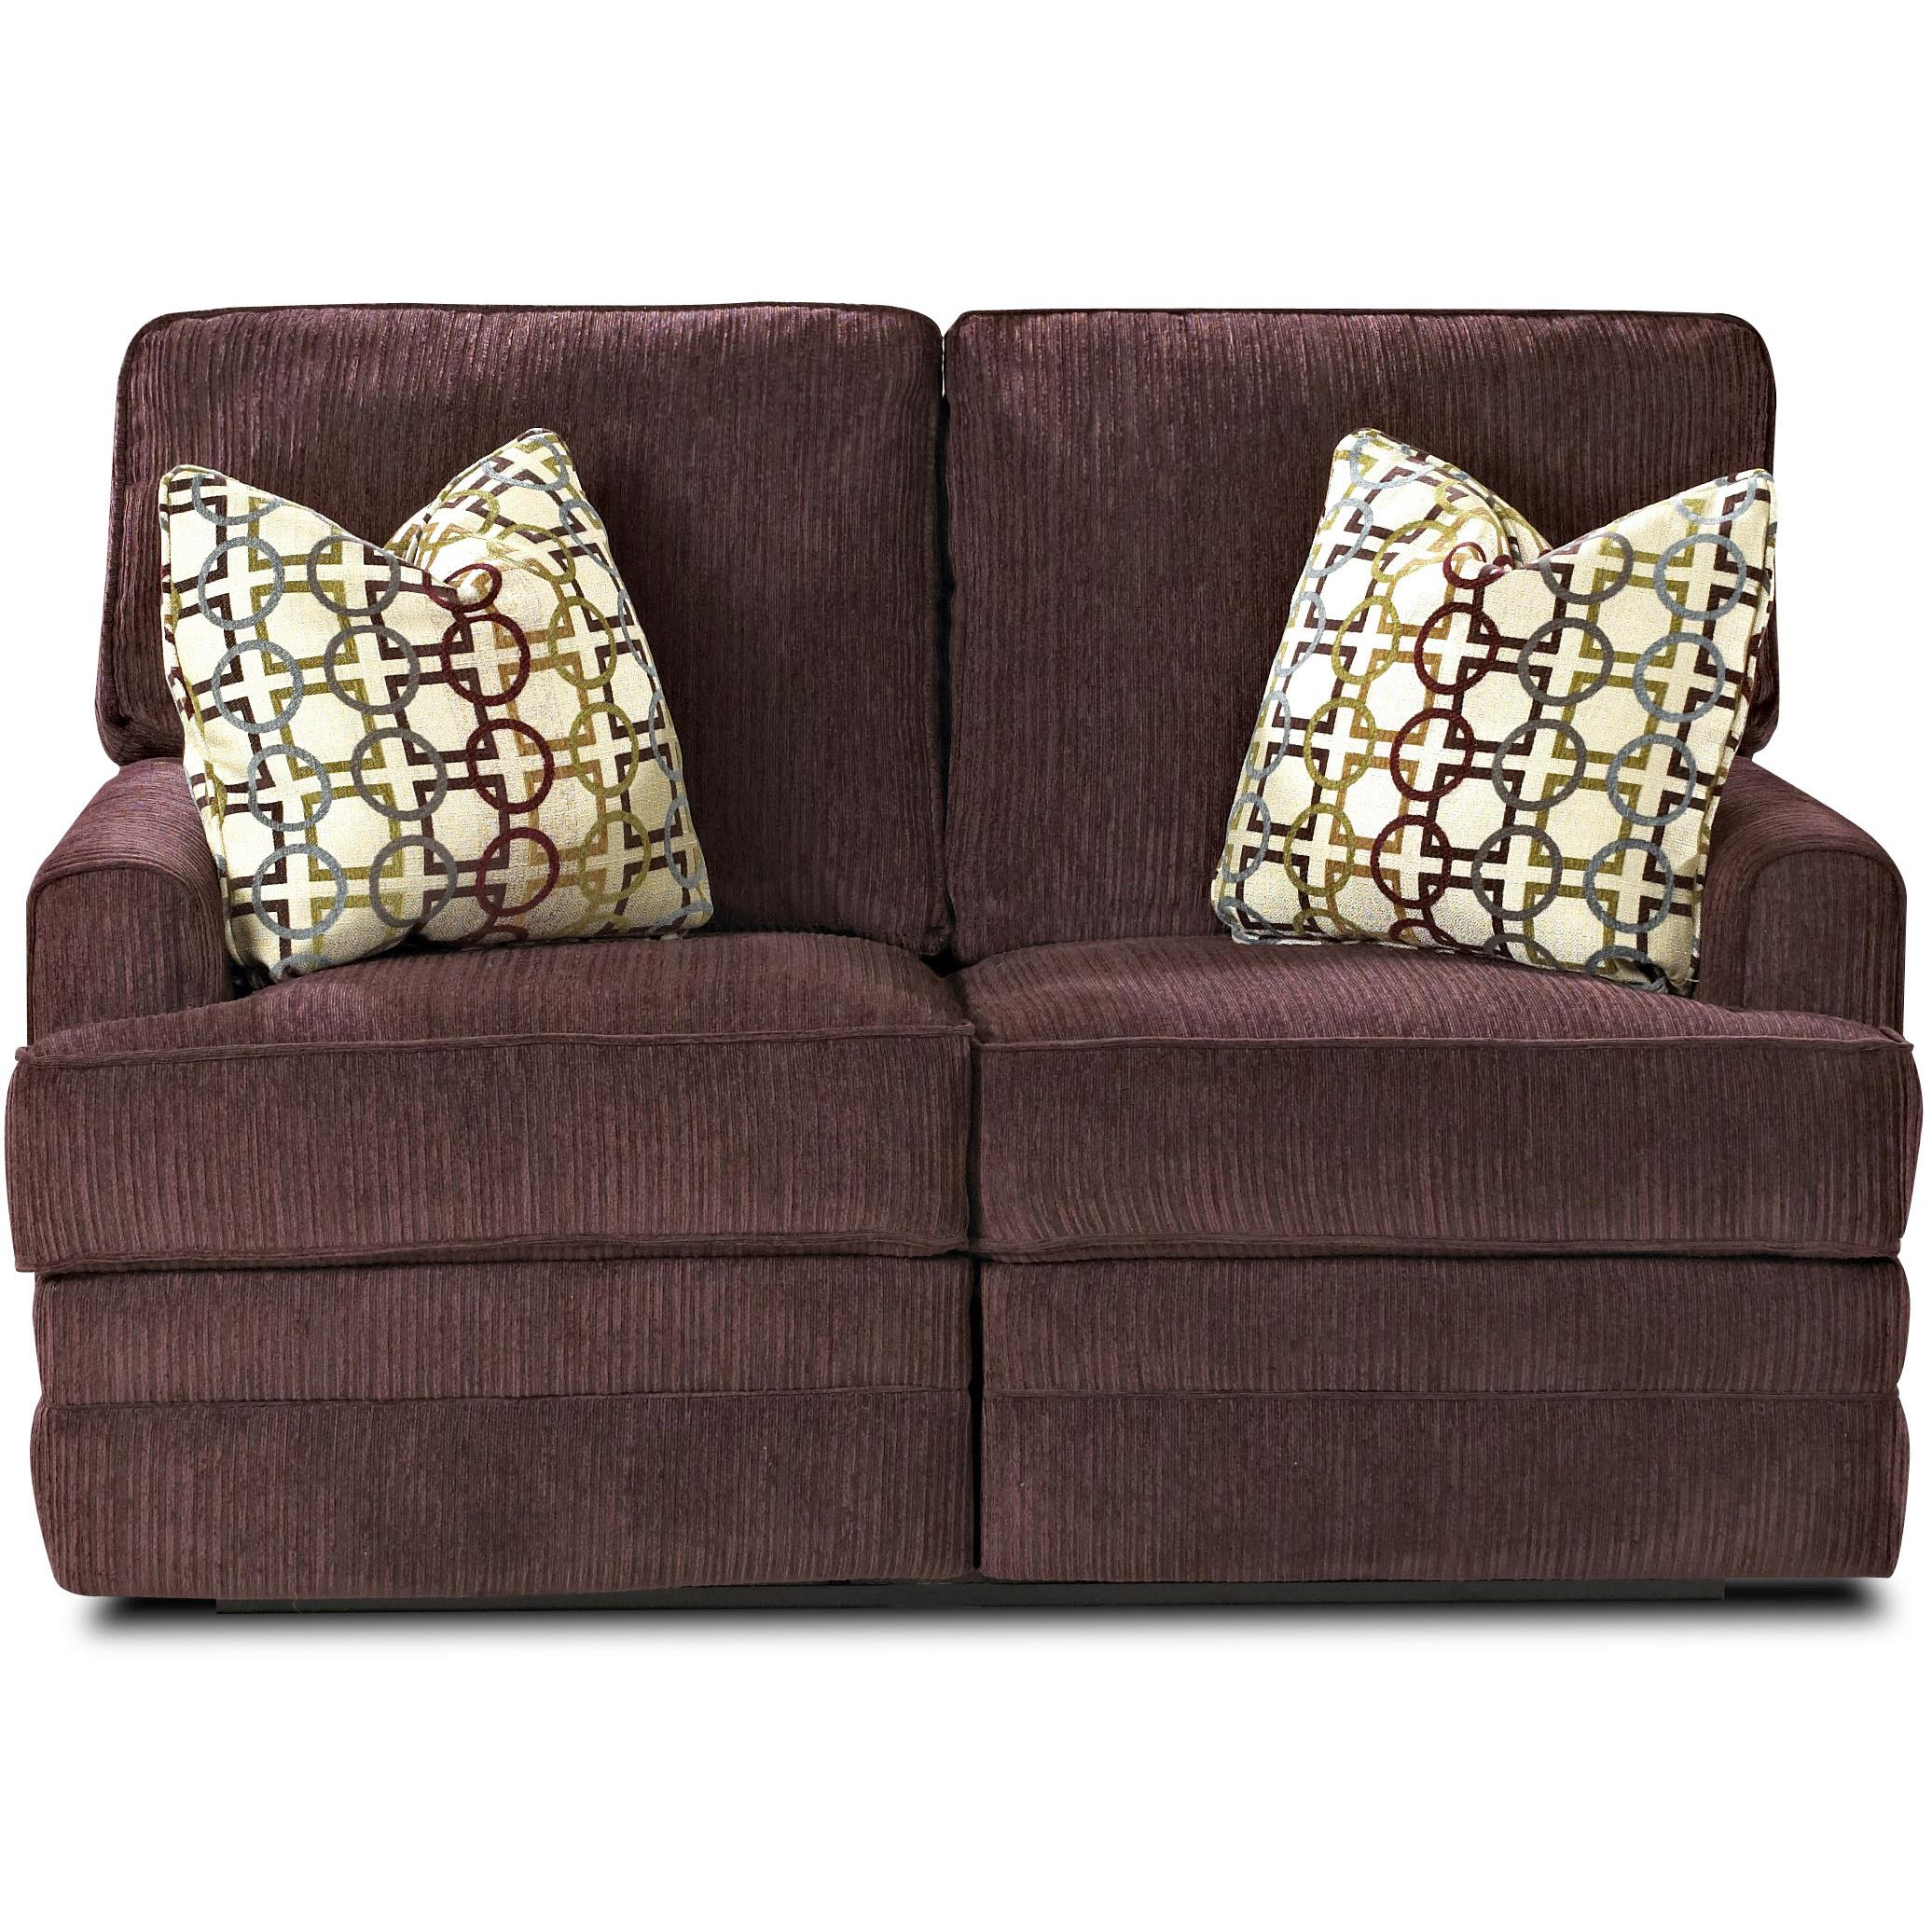 Casual Reclining Love Seat with Track Arms with Pillows